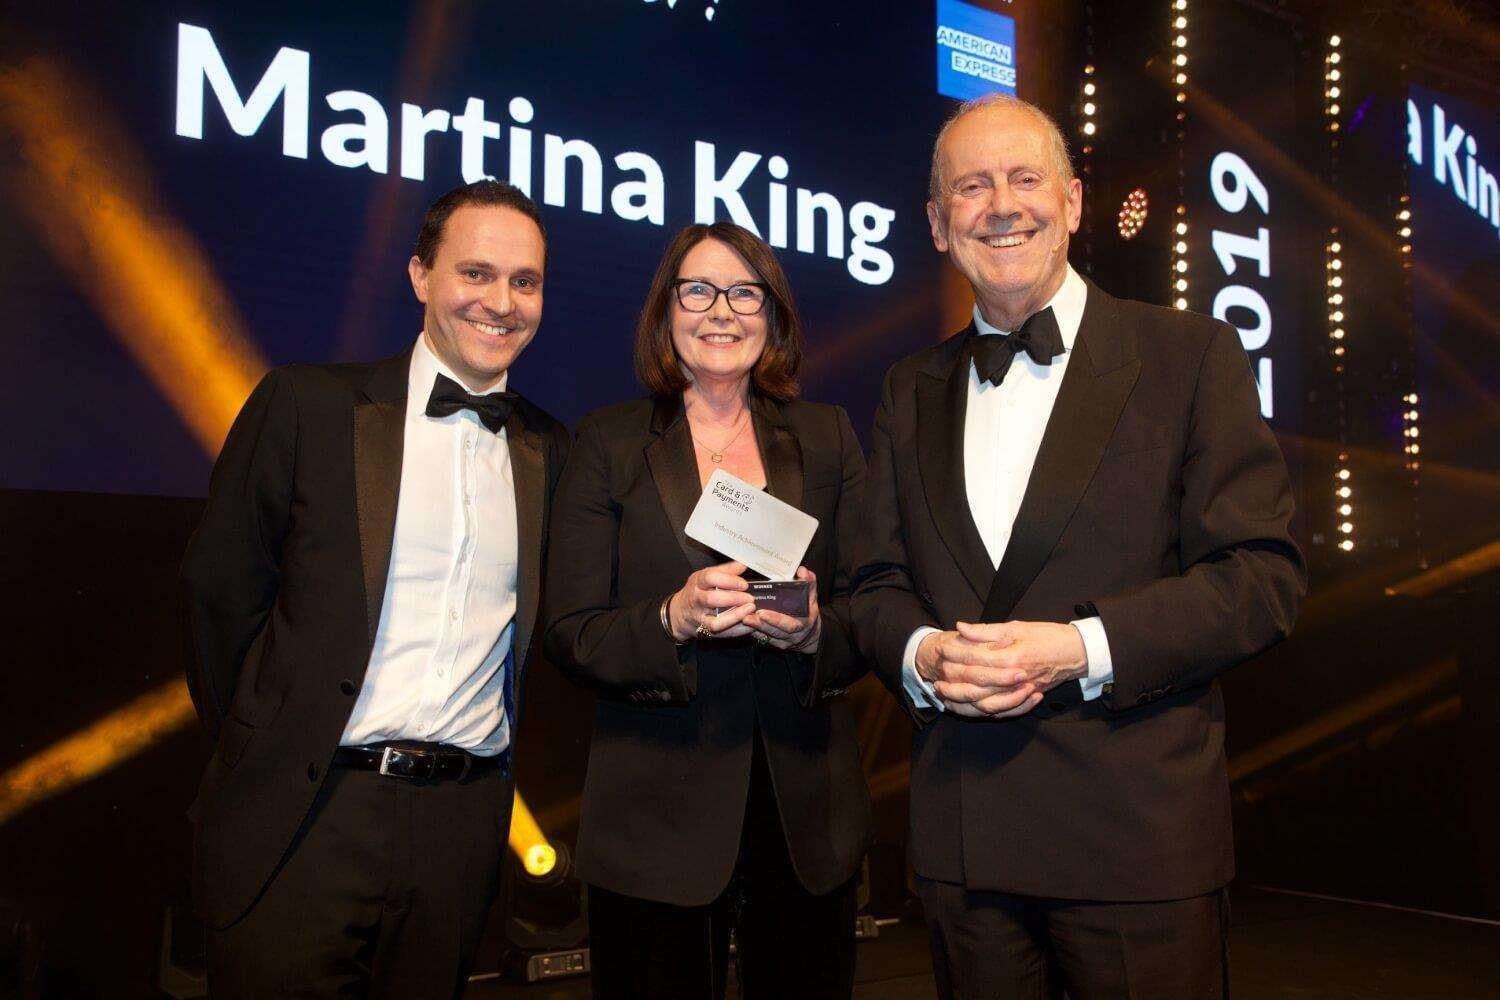 Featurespace CEO Martina King collects her Industry Achievement Award at the Card and Payment Awards 2019 (7169597)